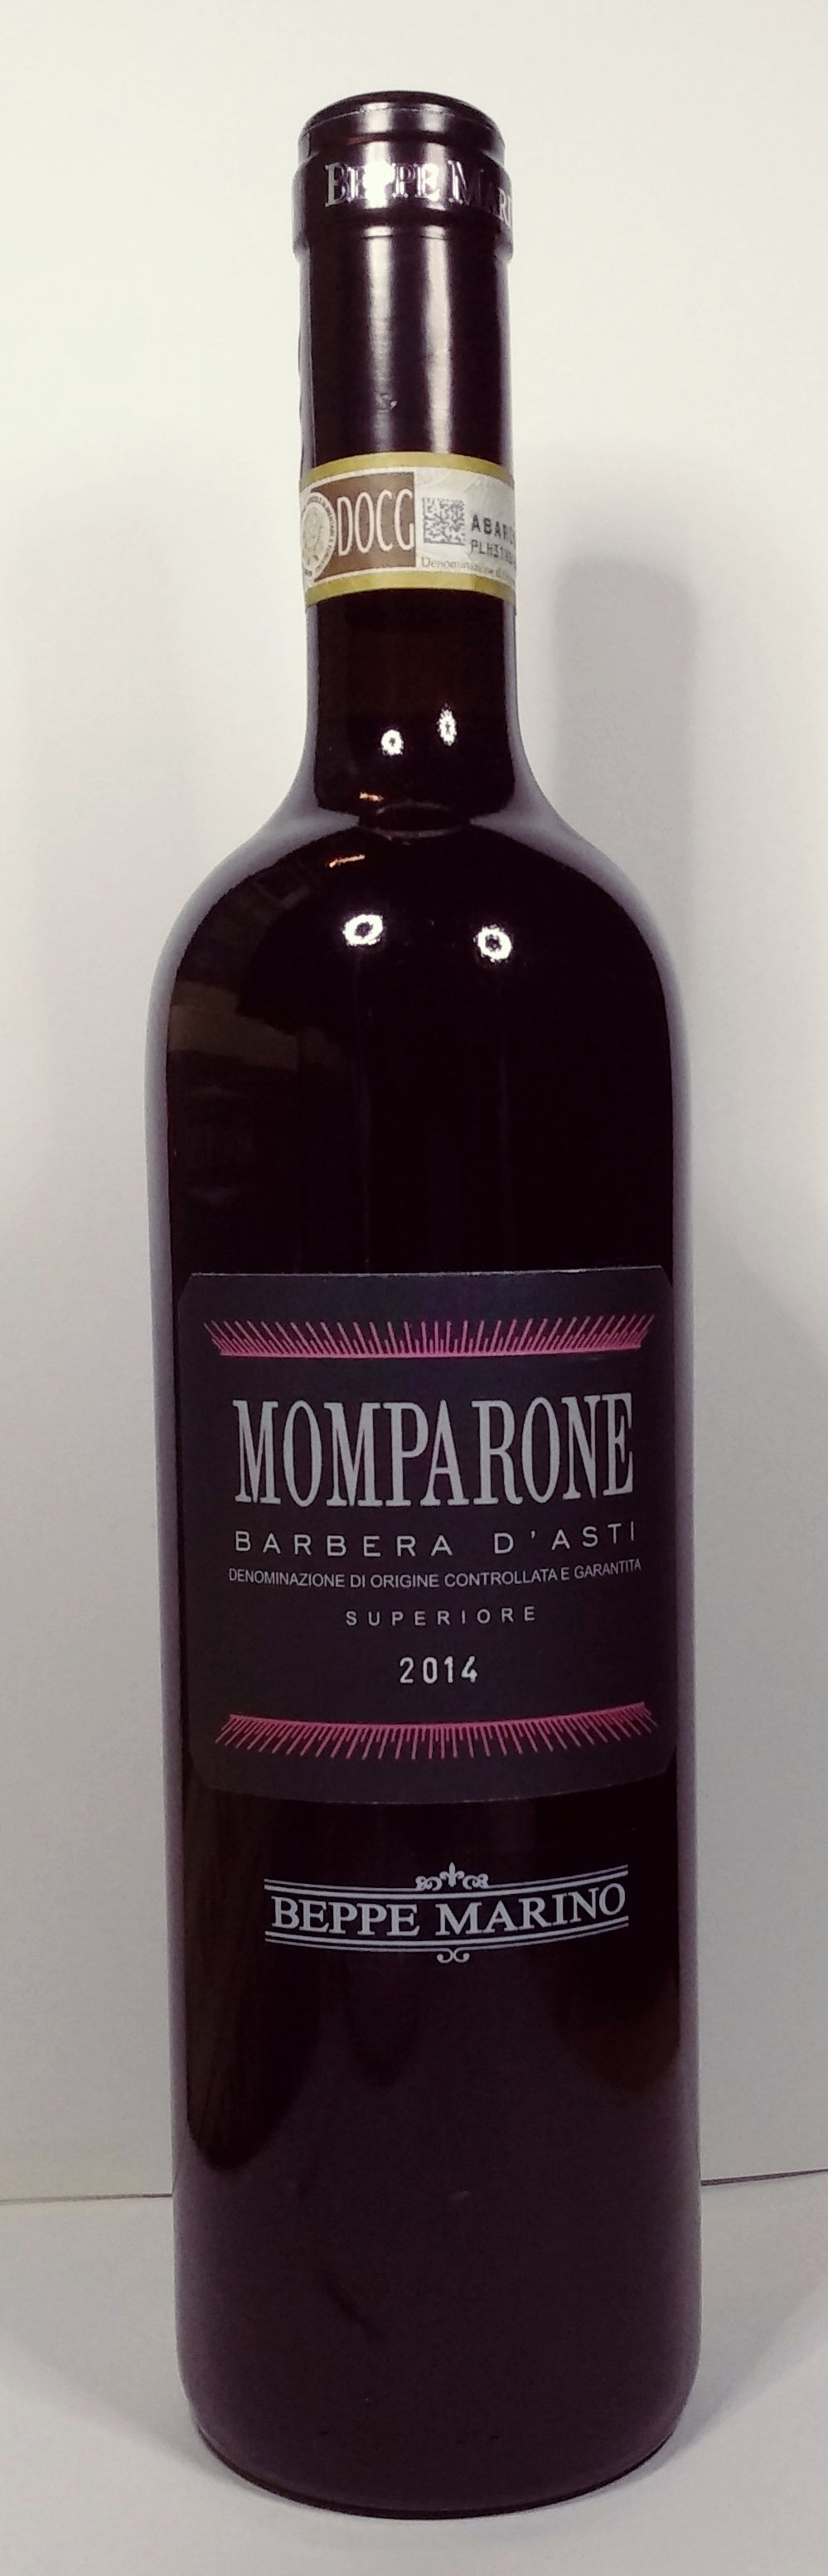 2014 Momparone Barbera d'Asti Superiore